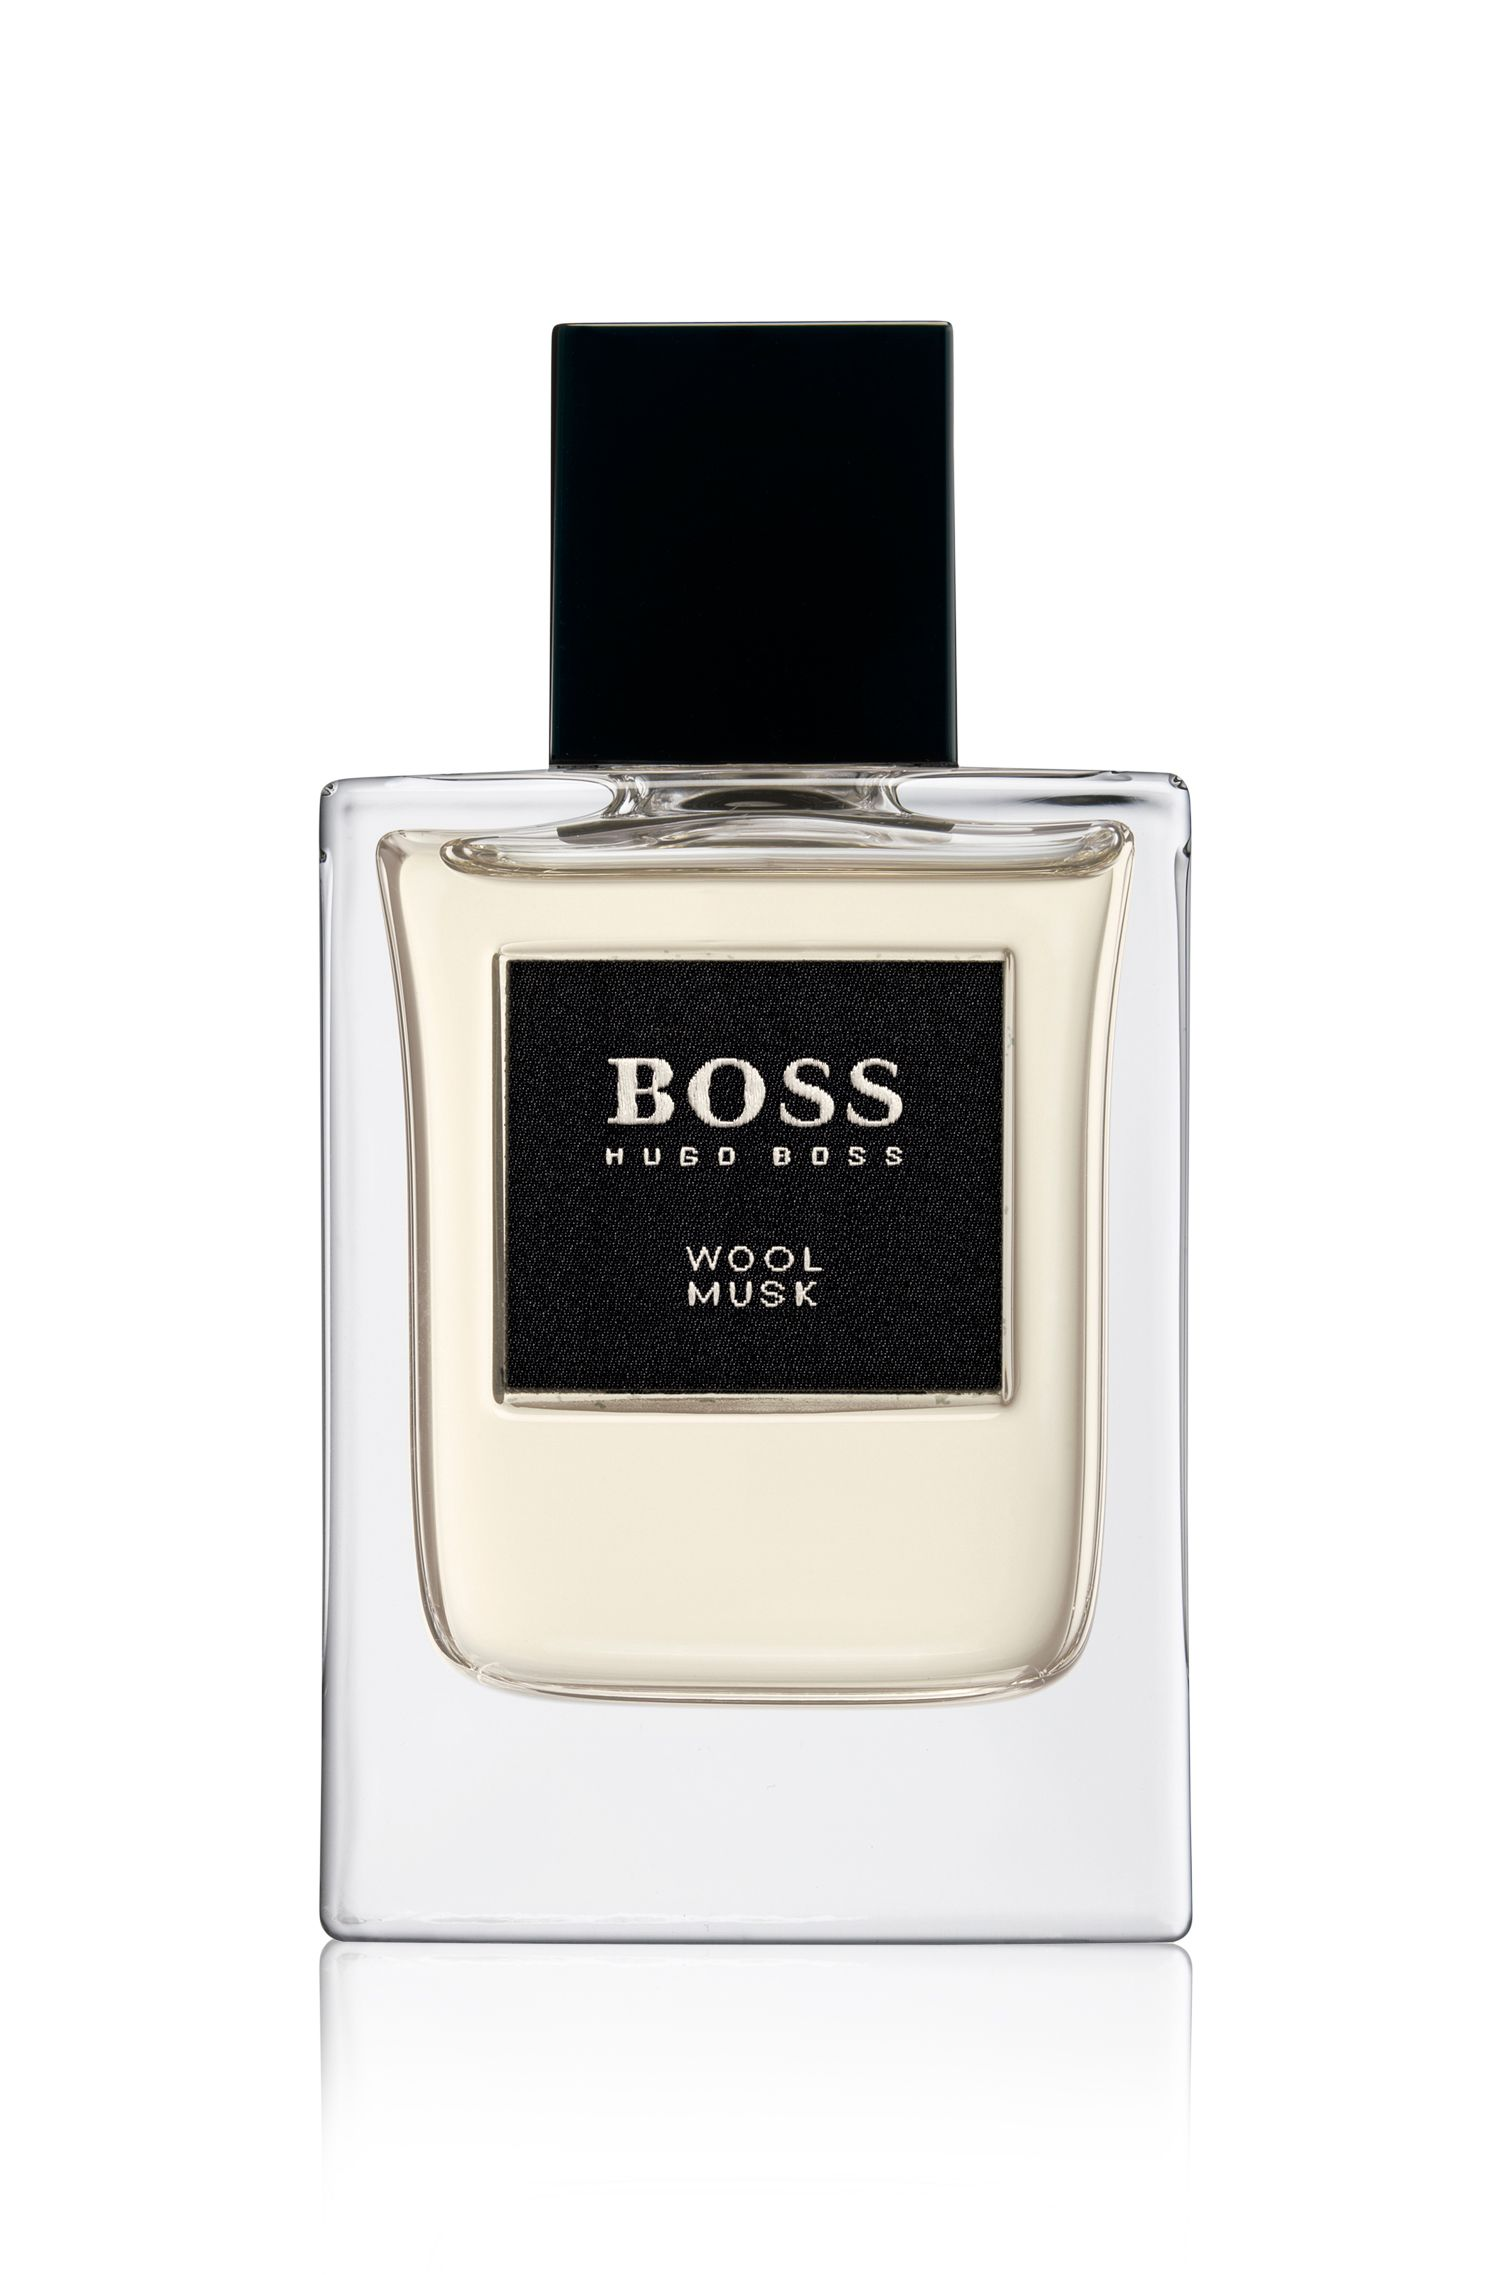 'BOSS The Collection' | 1.6 fl. oz. (50 mL) Wool & Musk Eau de Toilette